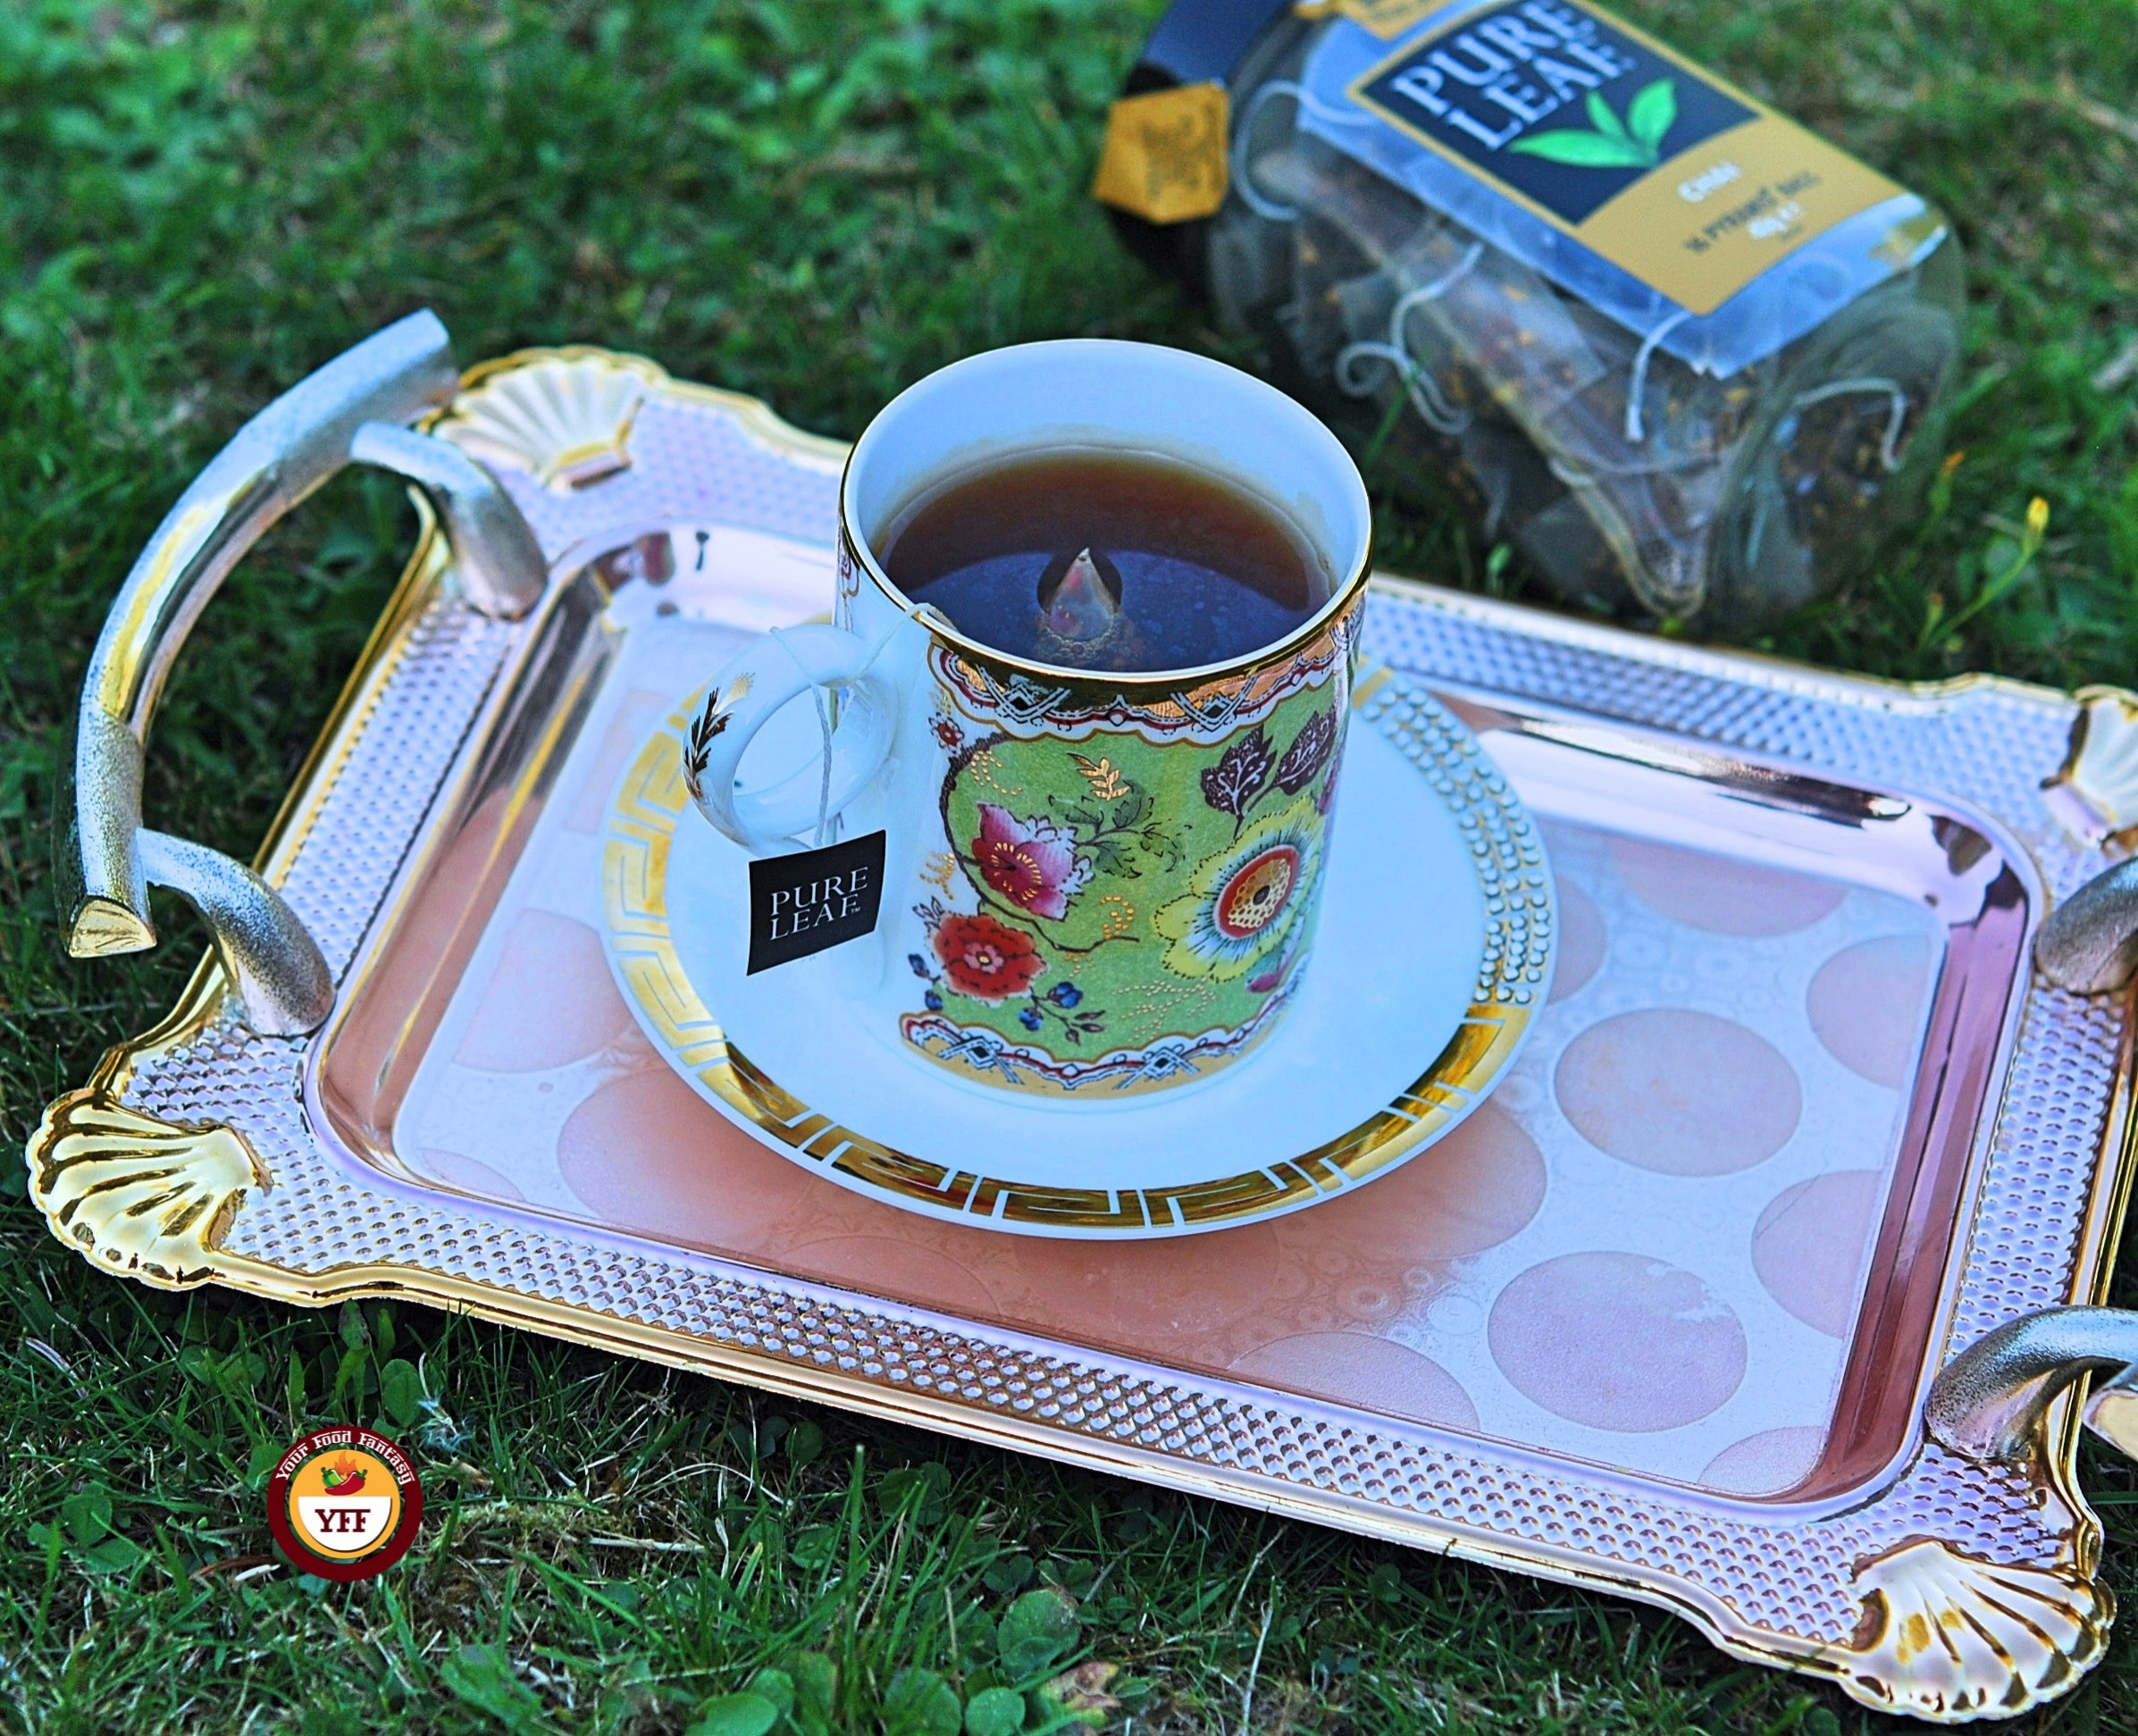 Pure Leaf Tea review by YourFoodFantasy.com